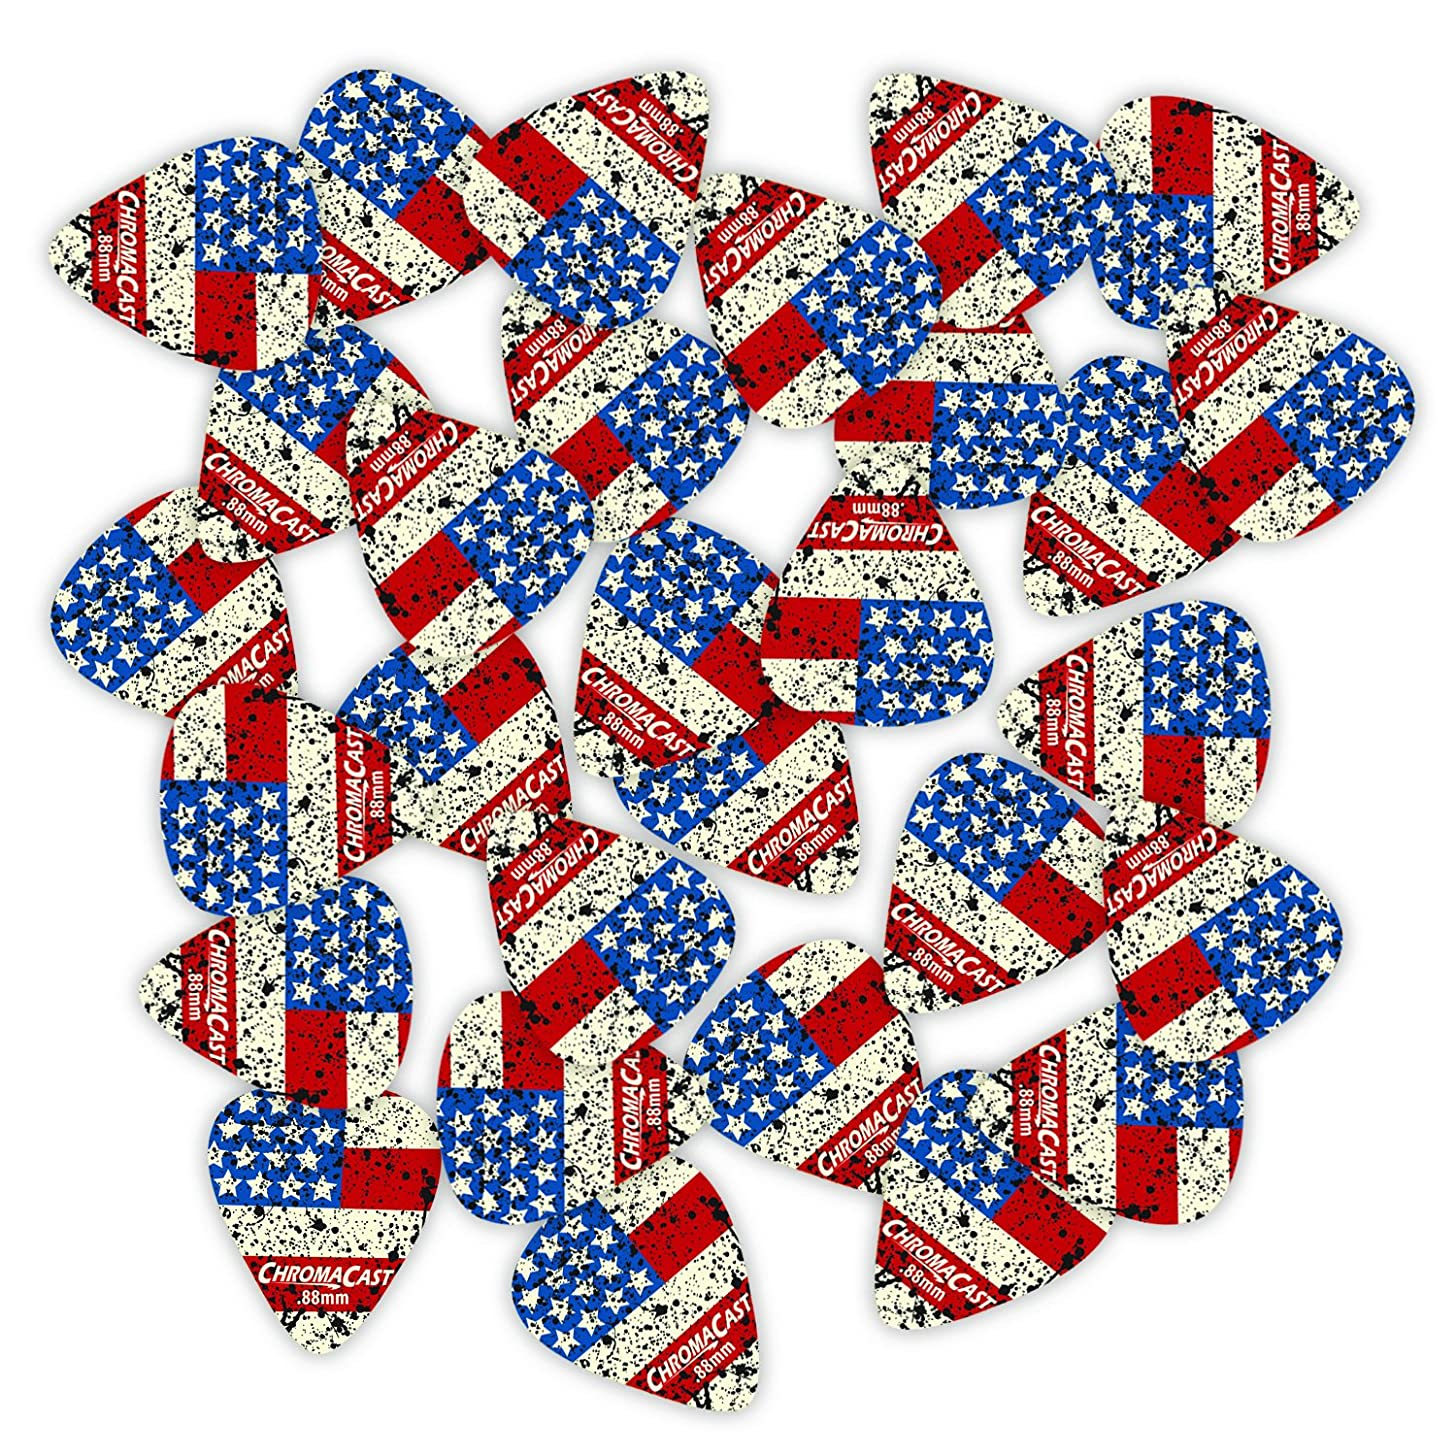 ChromaCast CC-DP-USA-73-30PK Delrin USA Flag Guitar Picks .73mm, 30 Pack, Medium